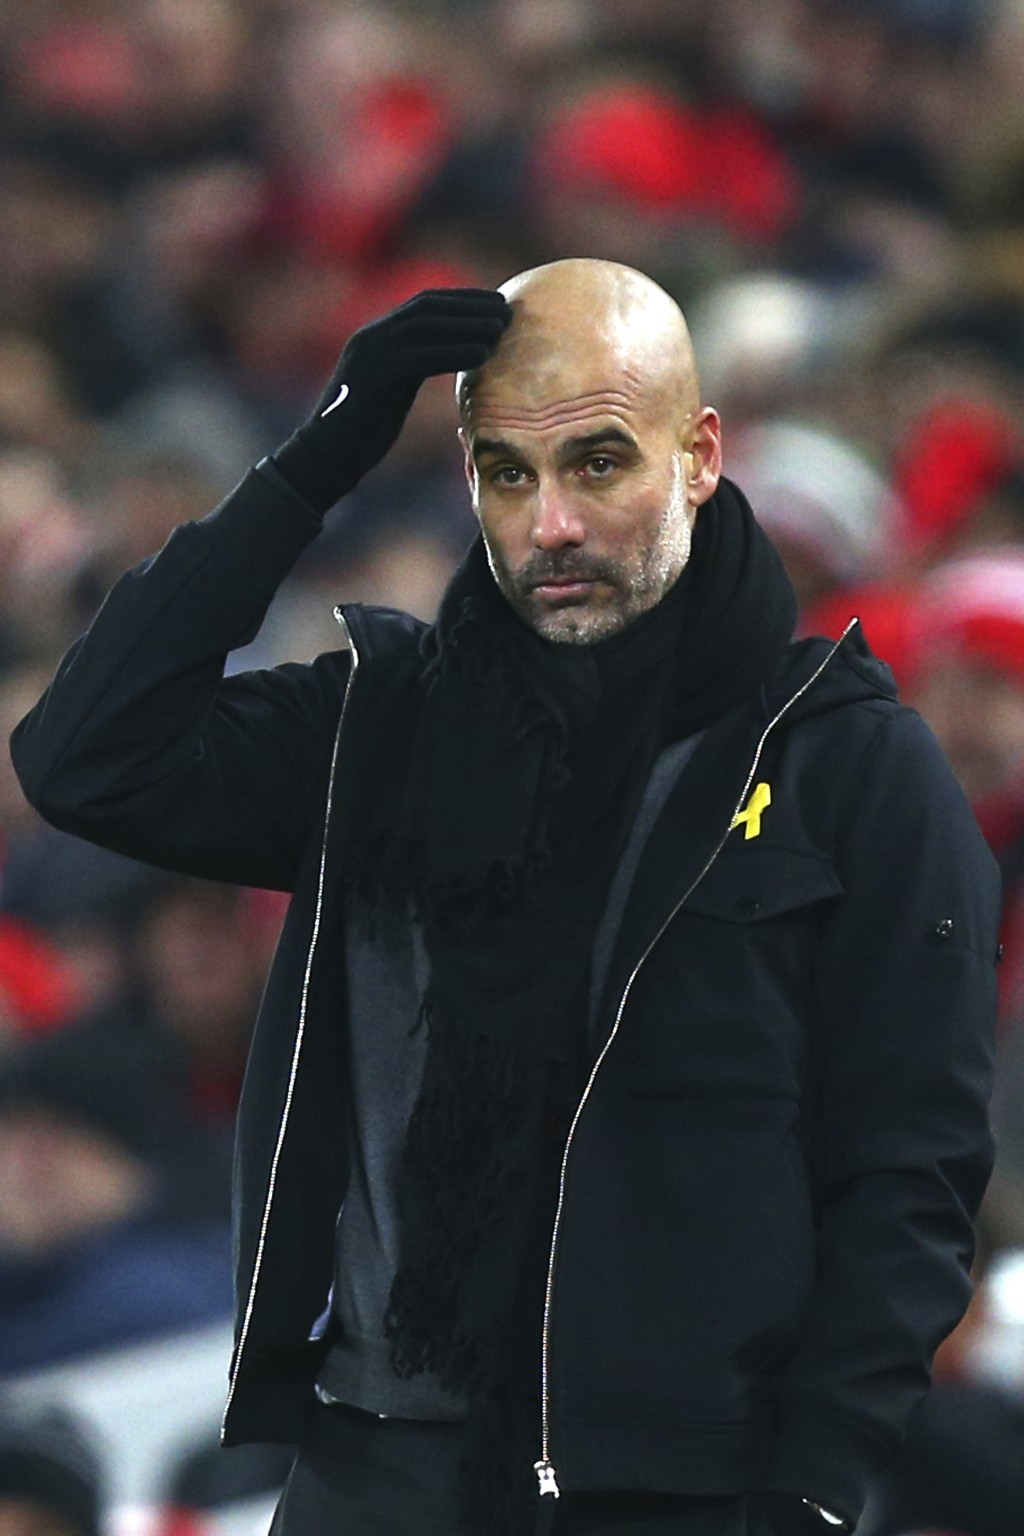 Manchester City's manager Pep Guardiola reacts during the English Premier League soccer match between Liverpool and Manchester City at Anfield Stadium